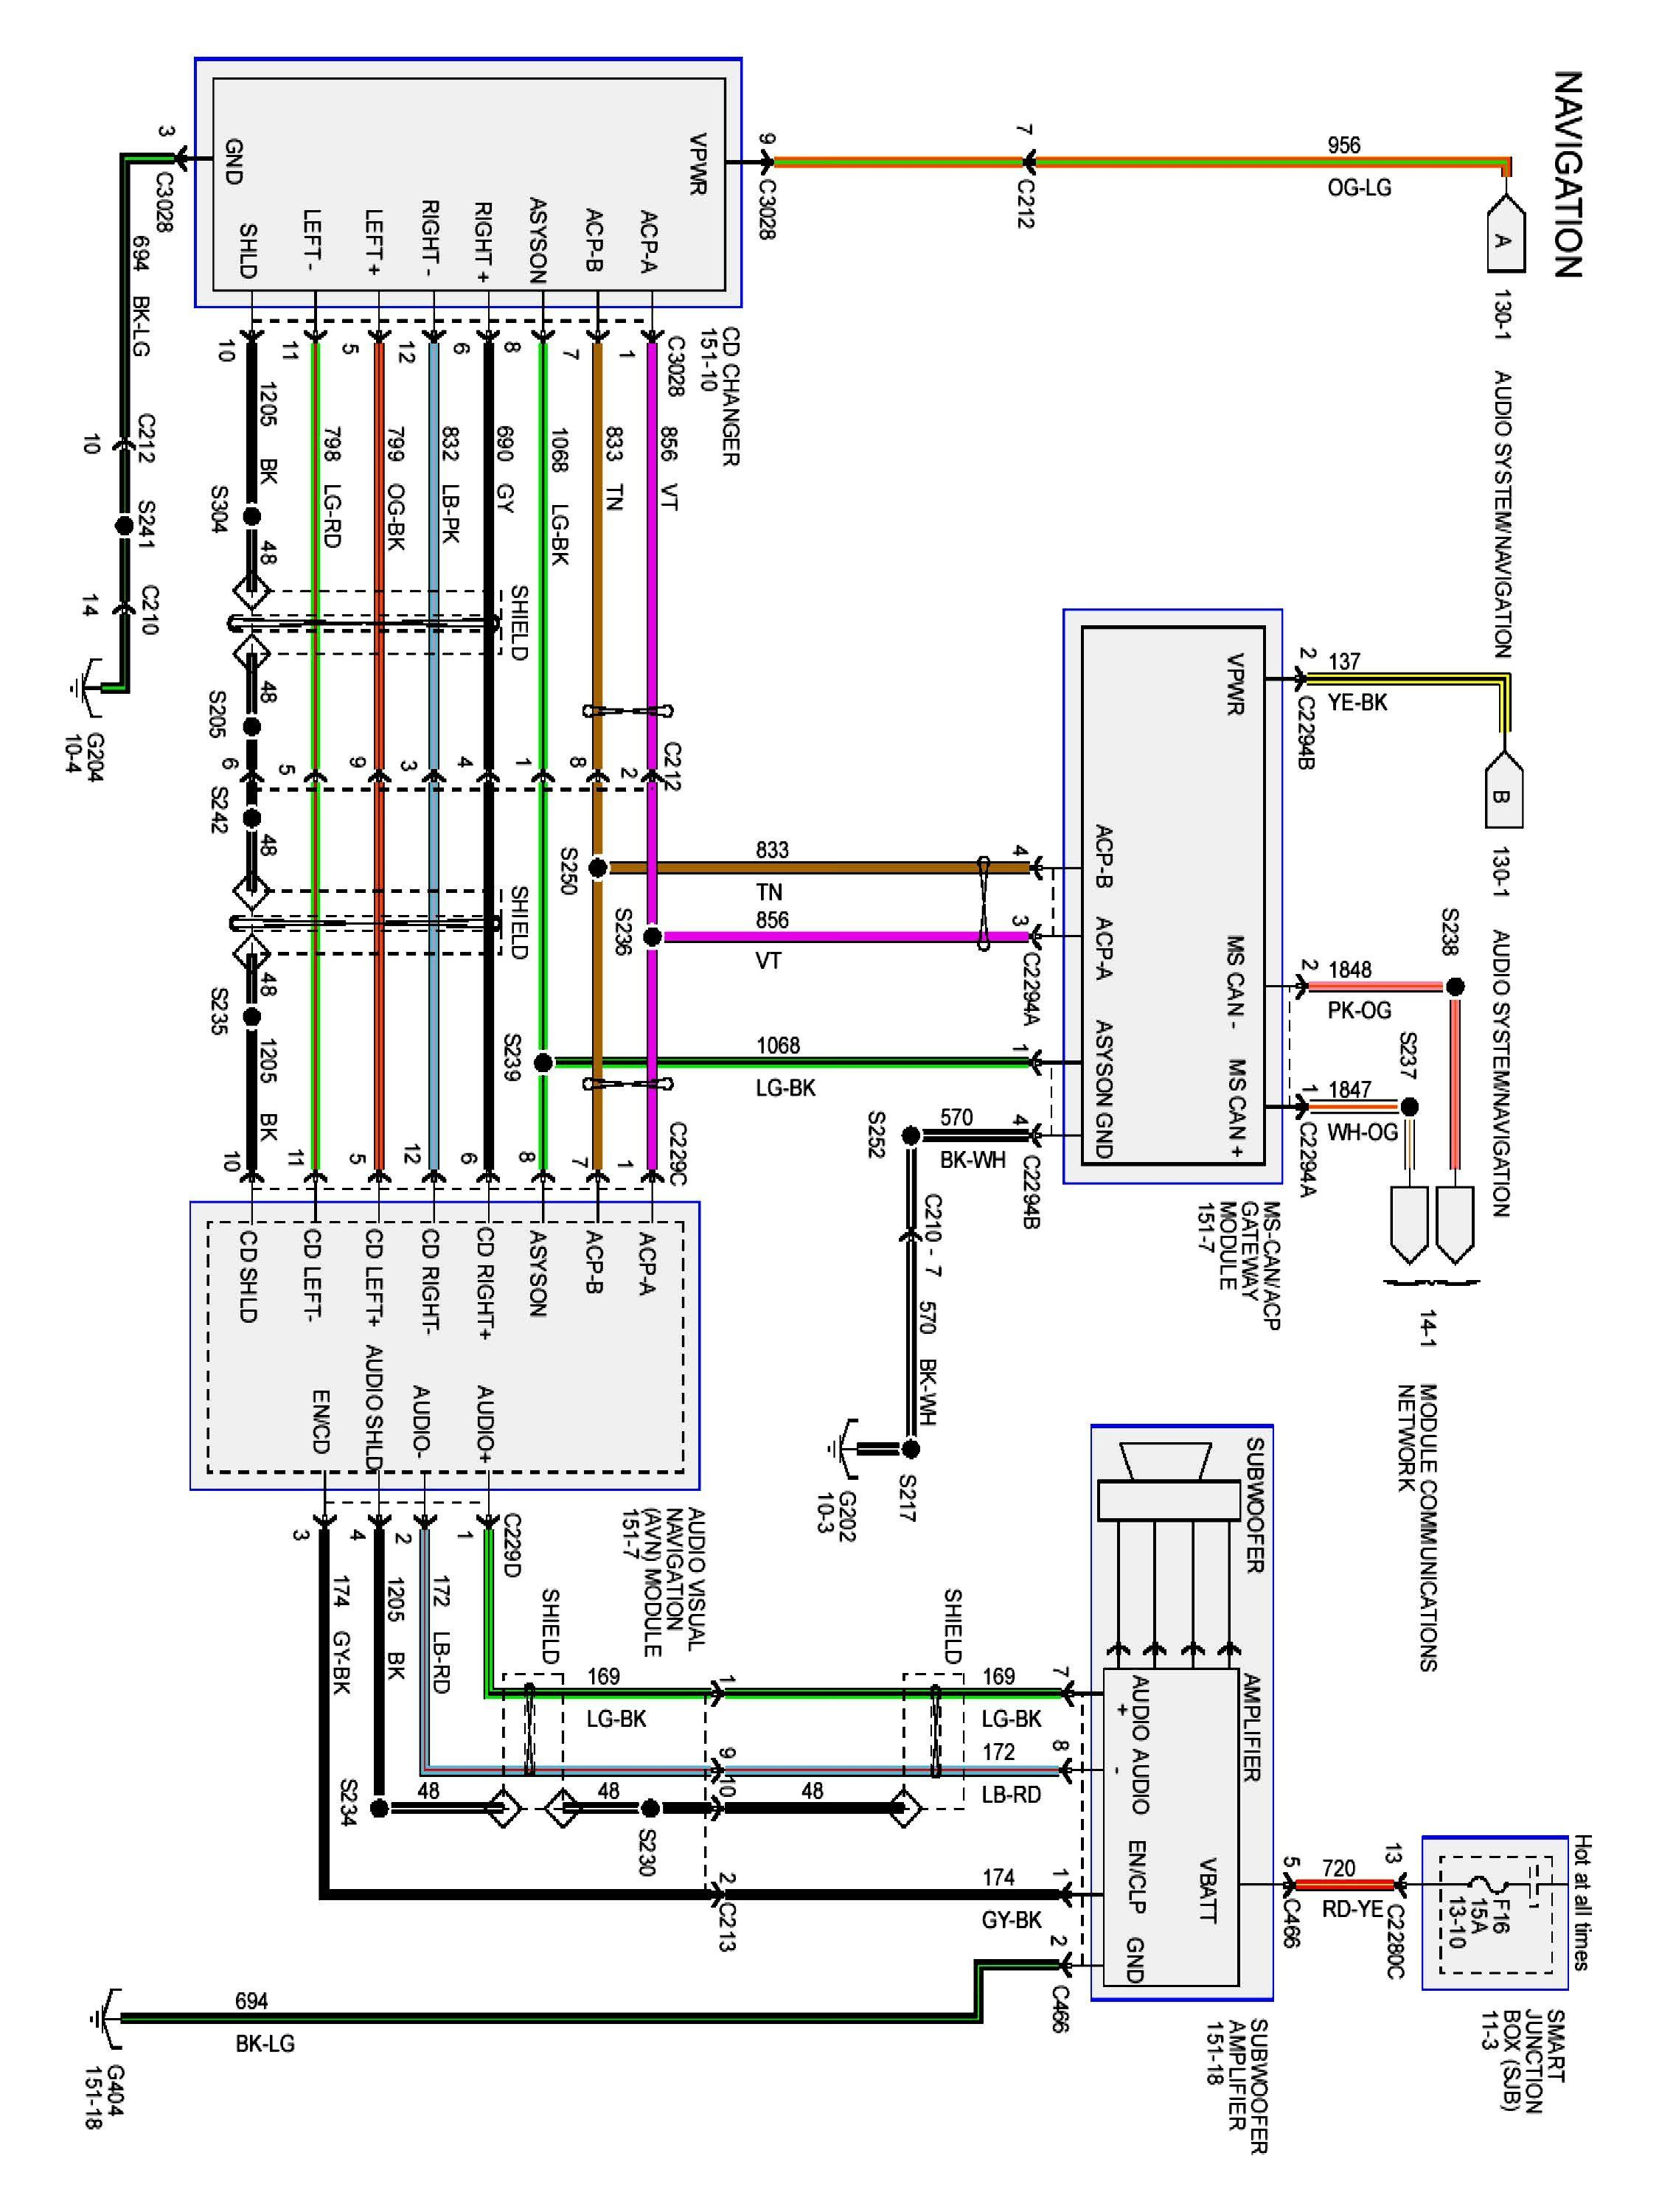 Wiring Schematic For 2006 Camry | Wiring Diagram on